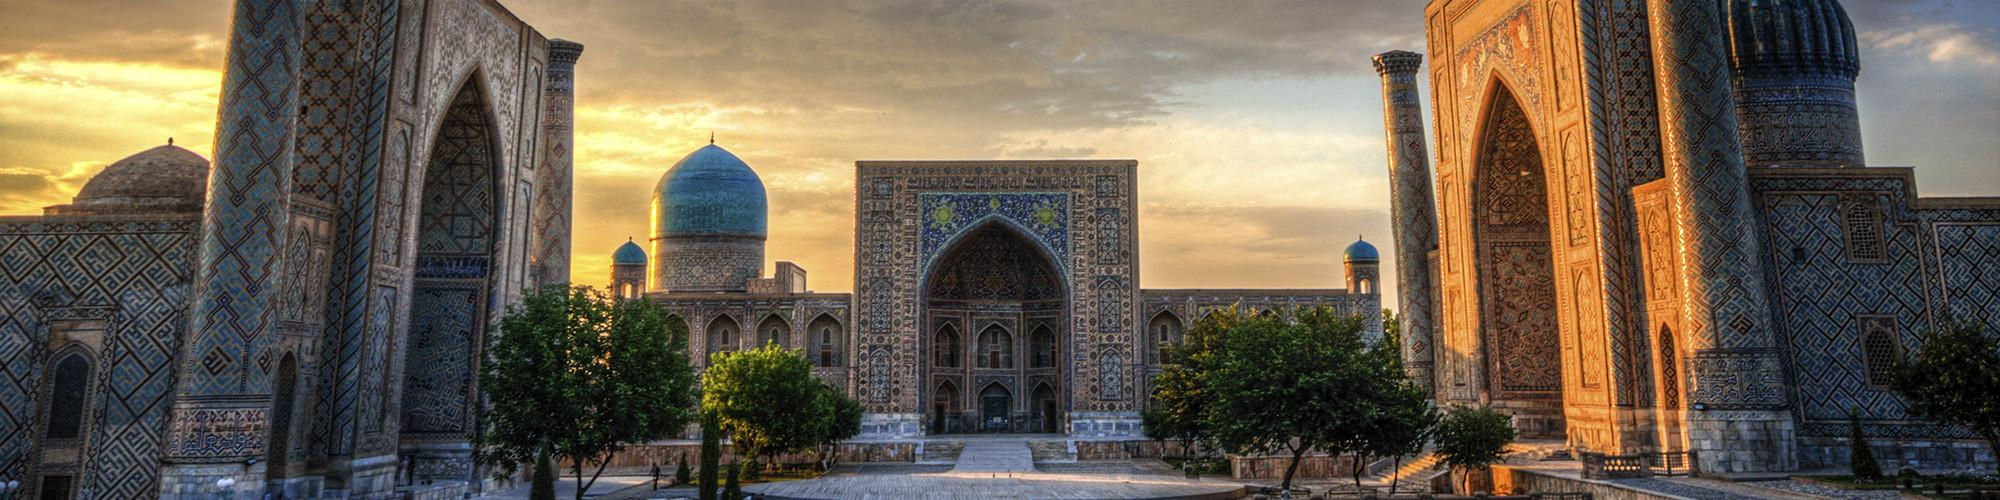 Uzbekistan Tours in Fall / Autumn 2019